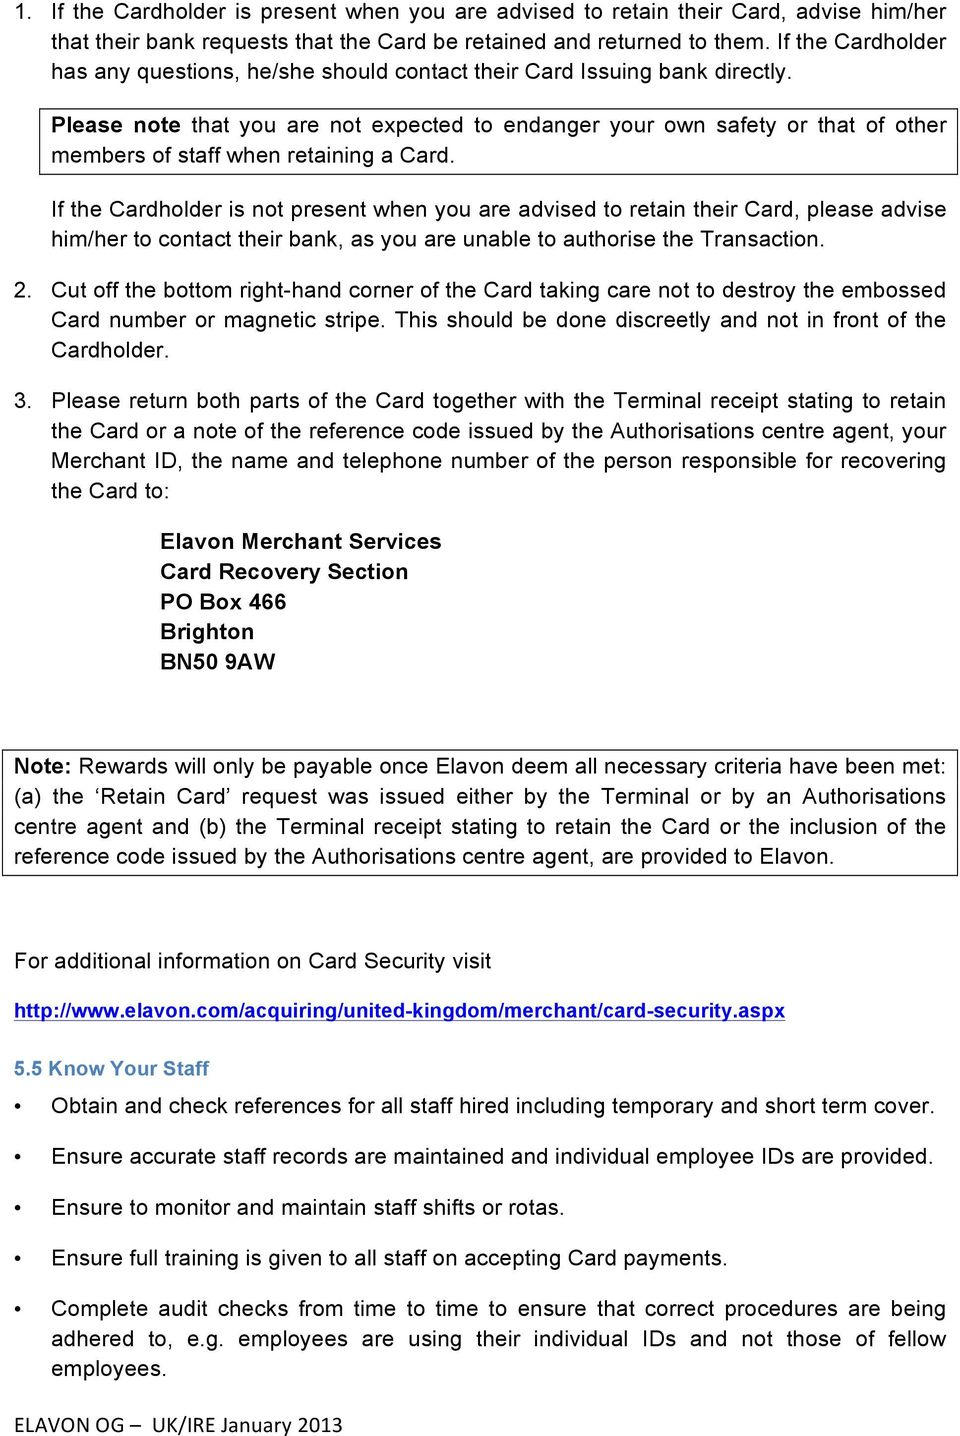 Please note that you are not expected to endanger your own safety or that of other members of staff when retaining a Card.